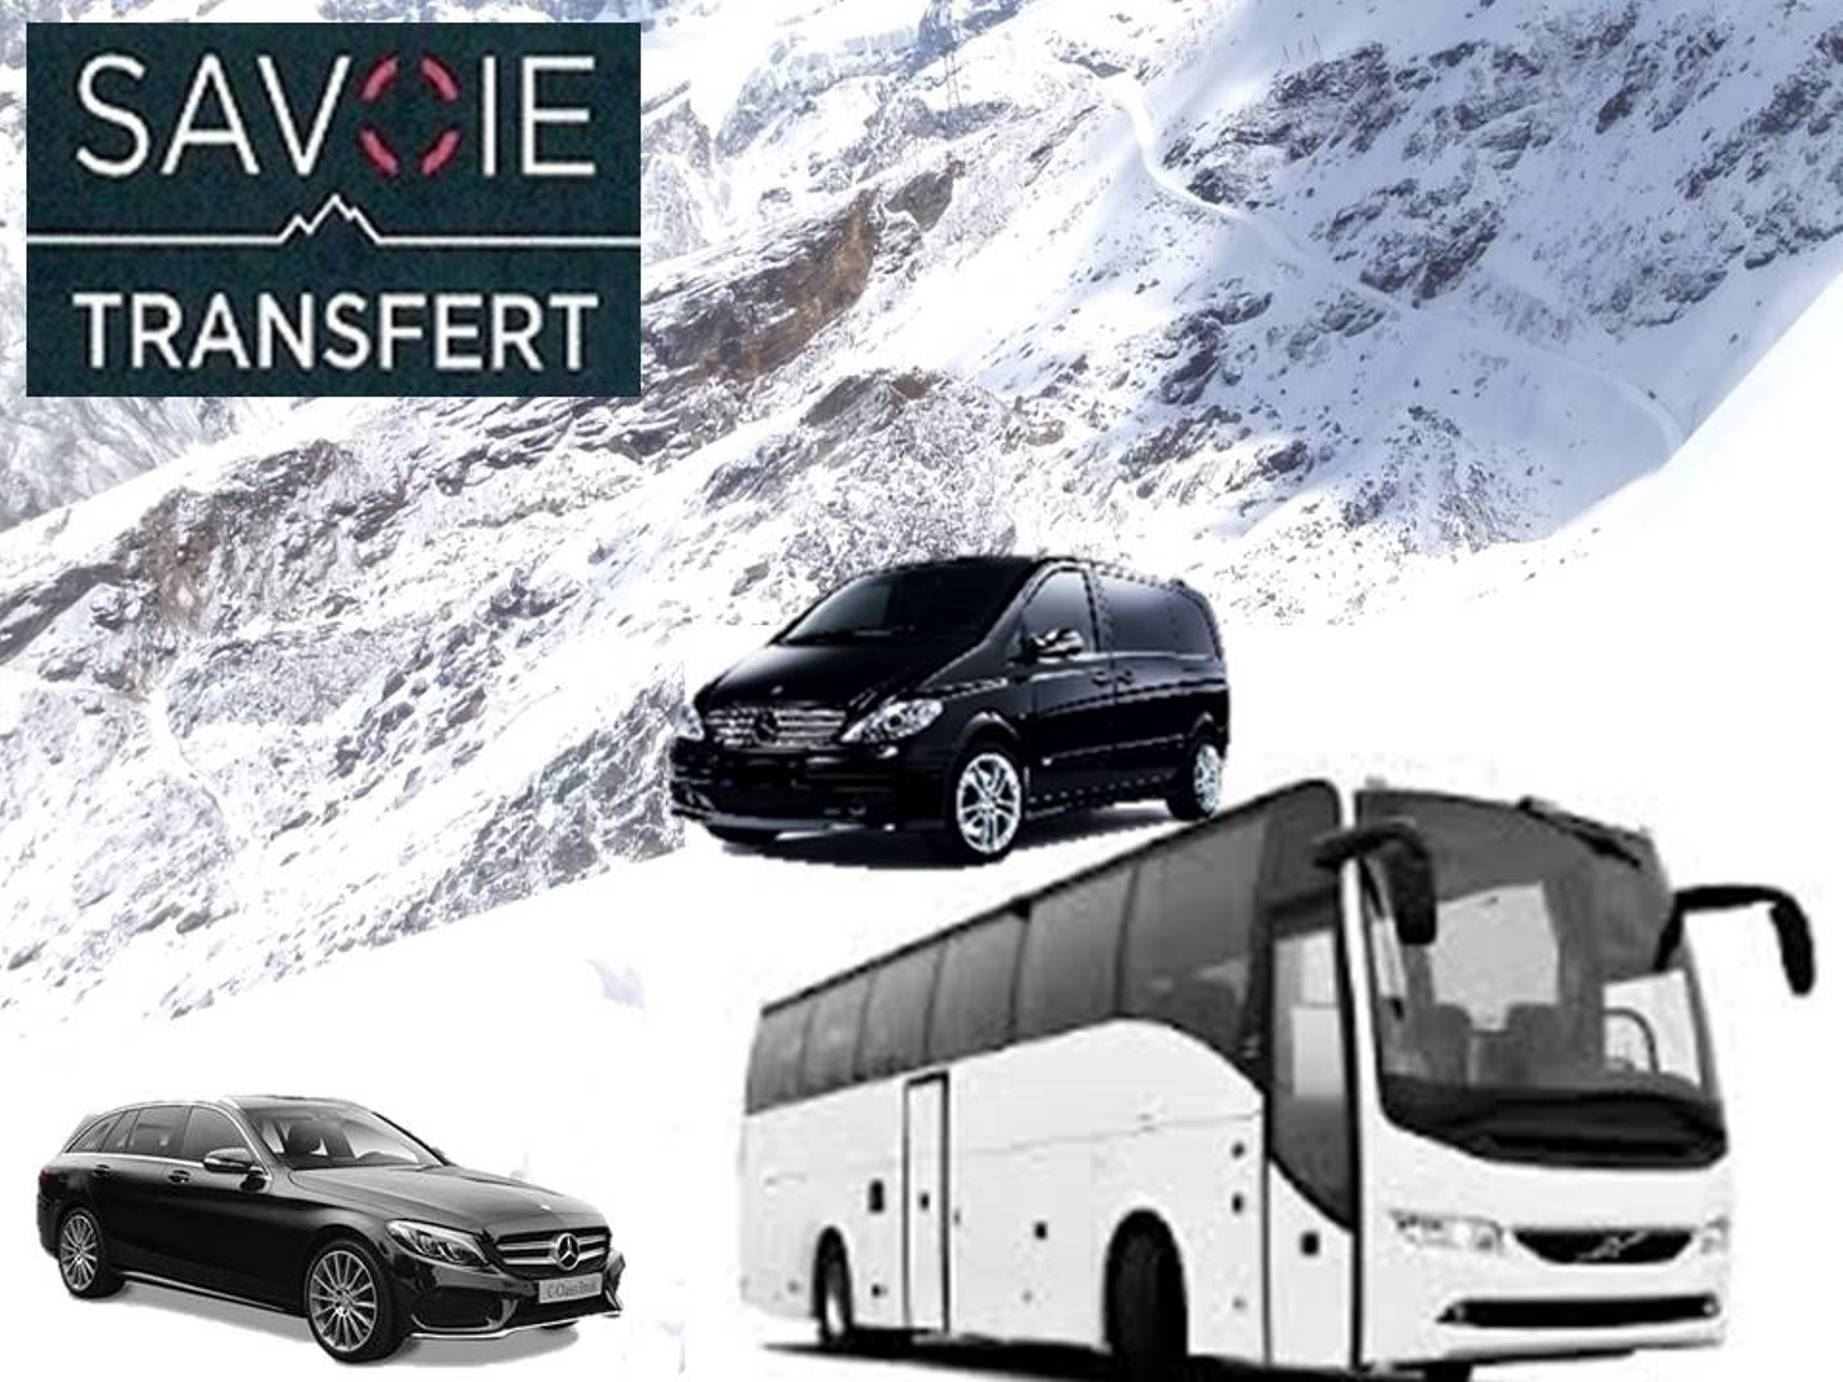 PRIVATE TRANSFER from CHAMBERY STATION with VAL THORENS TRANSFERT